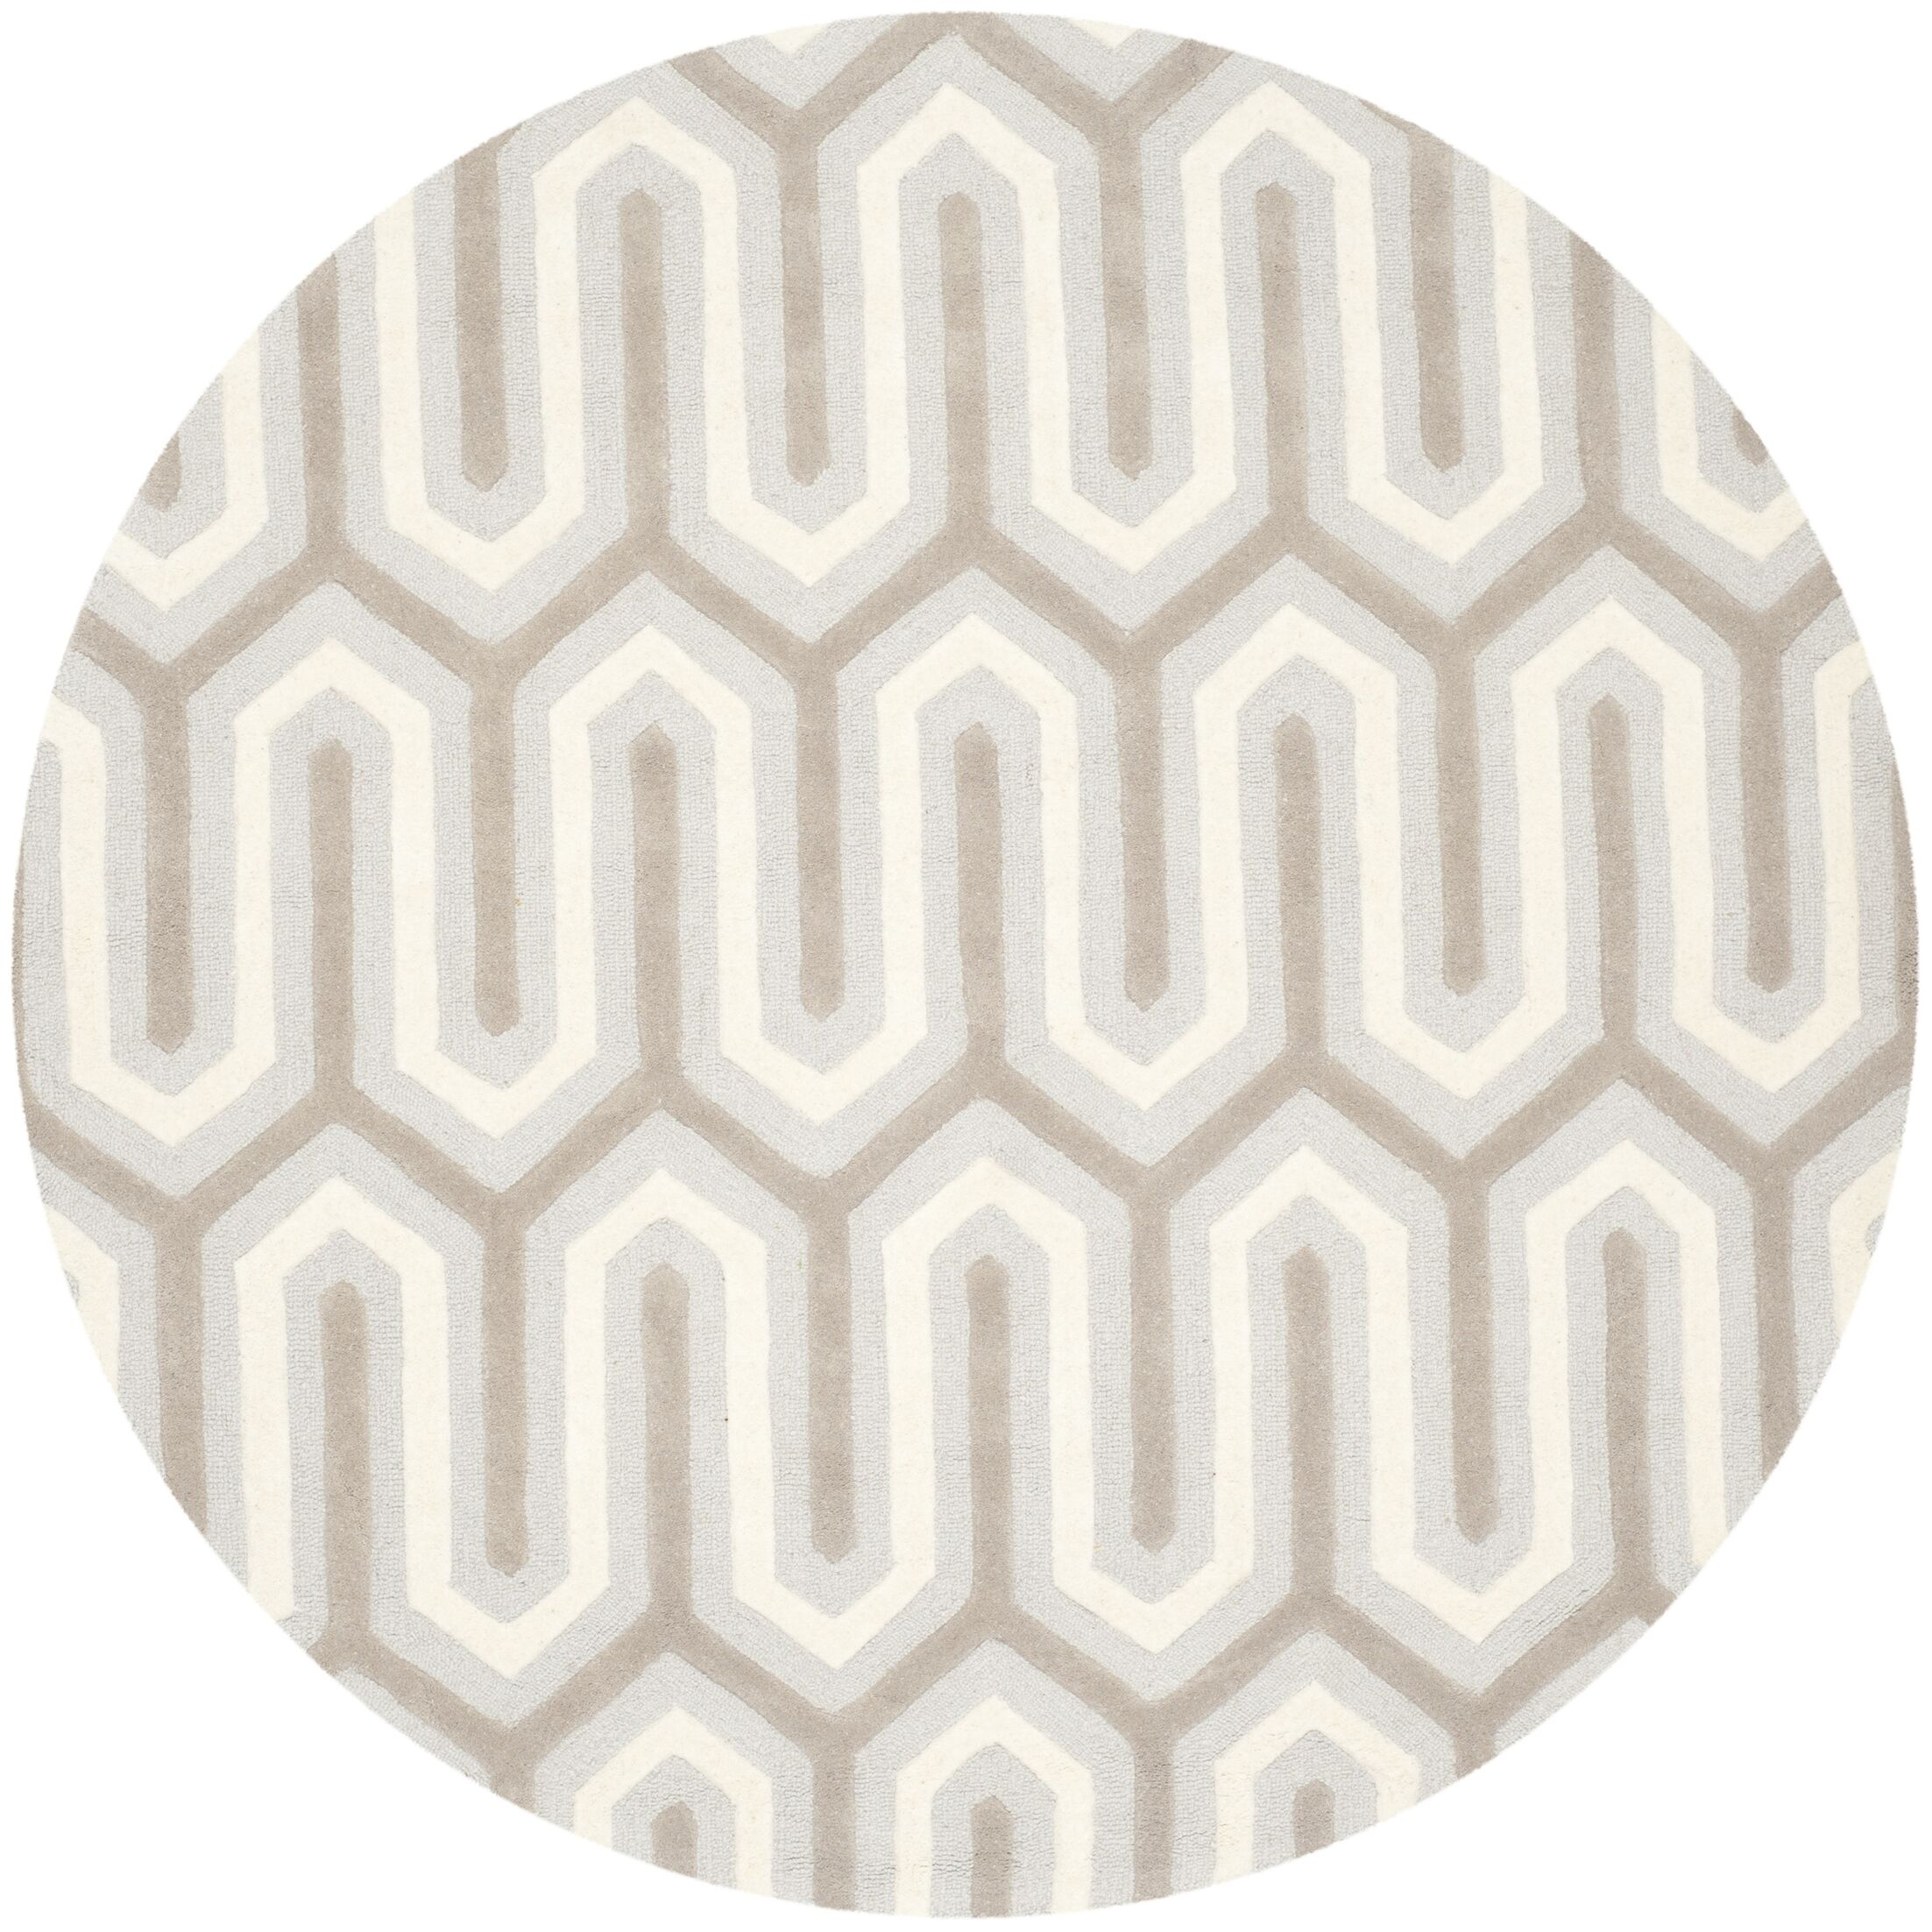 Martins Hand-Tufted Light Gray & Ivory Area Rug Rug Size: Round 6'